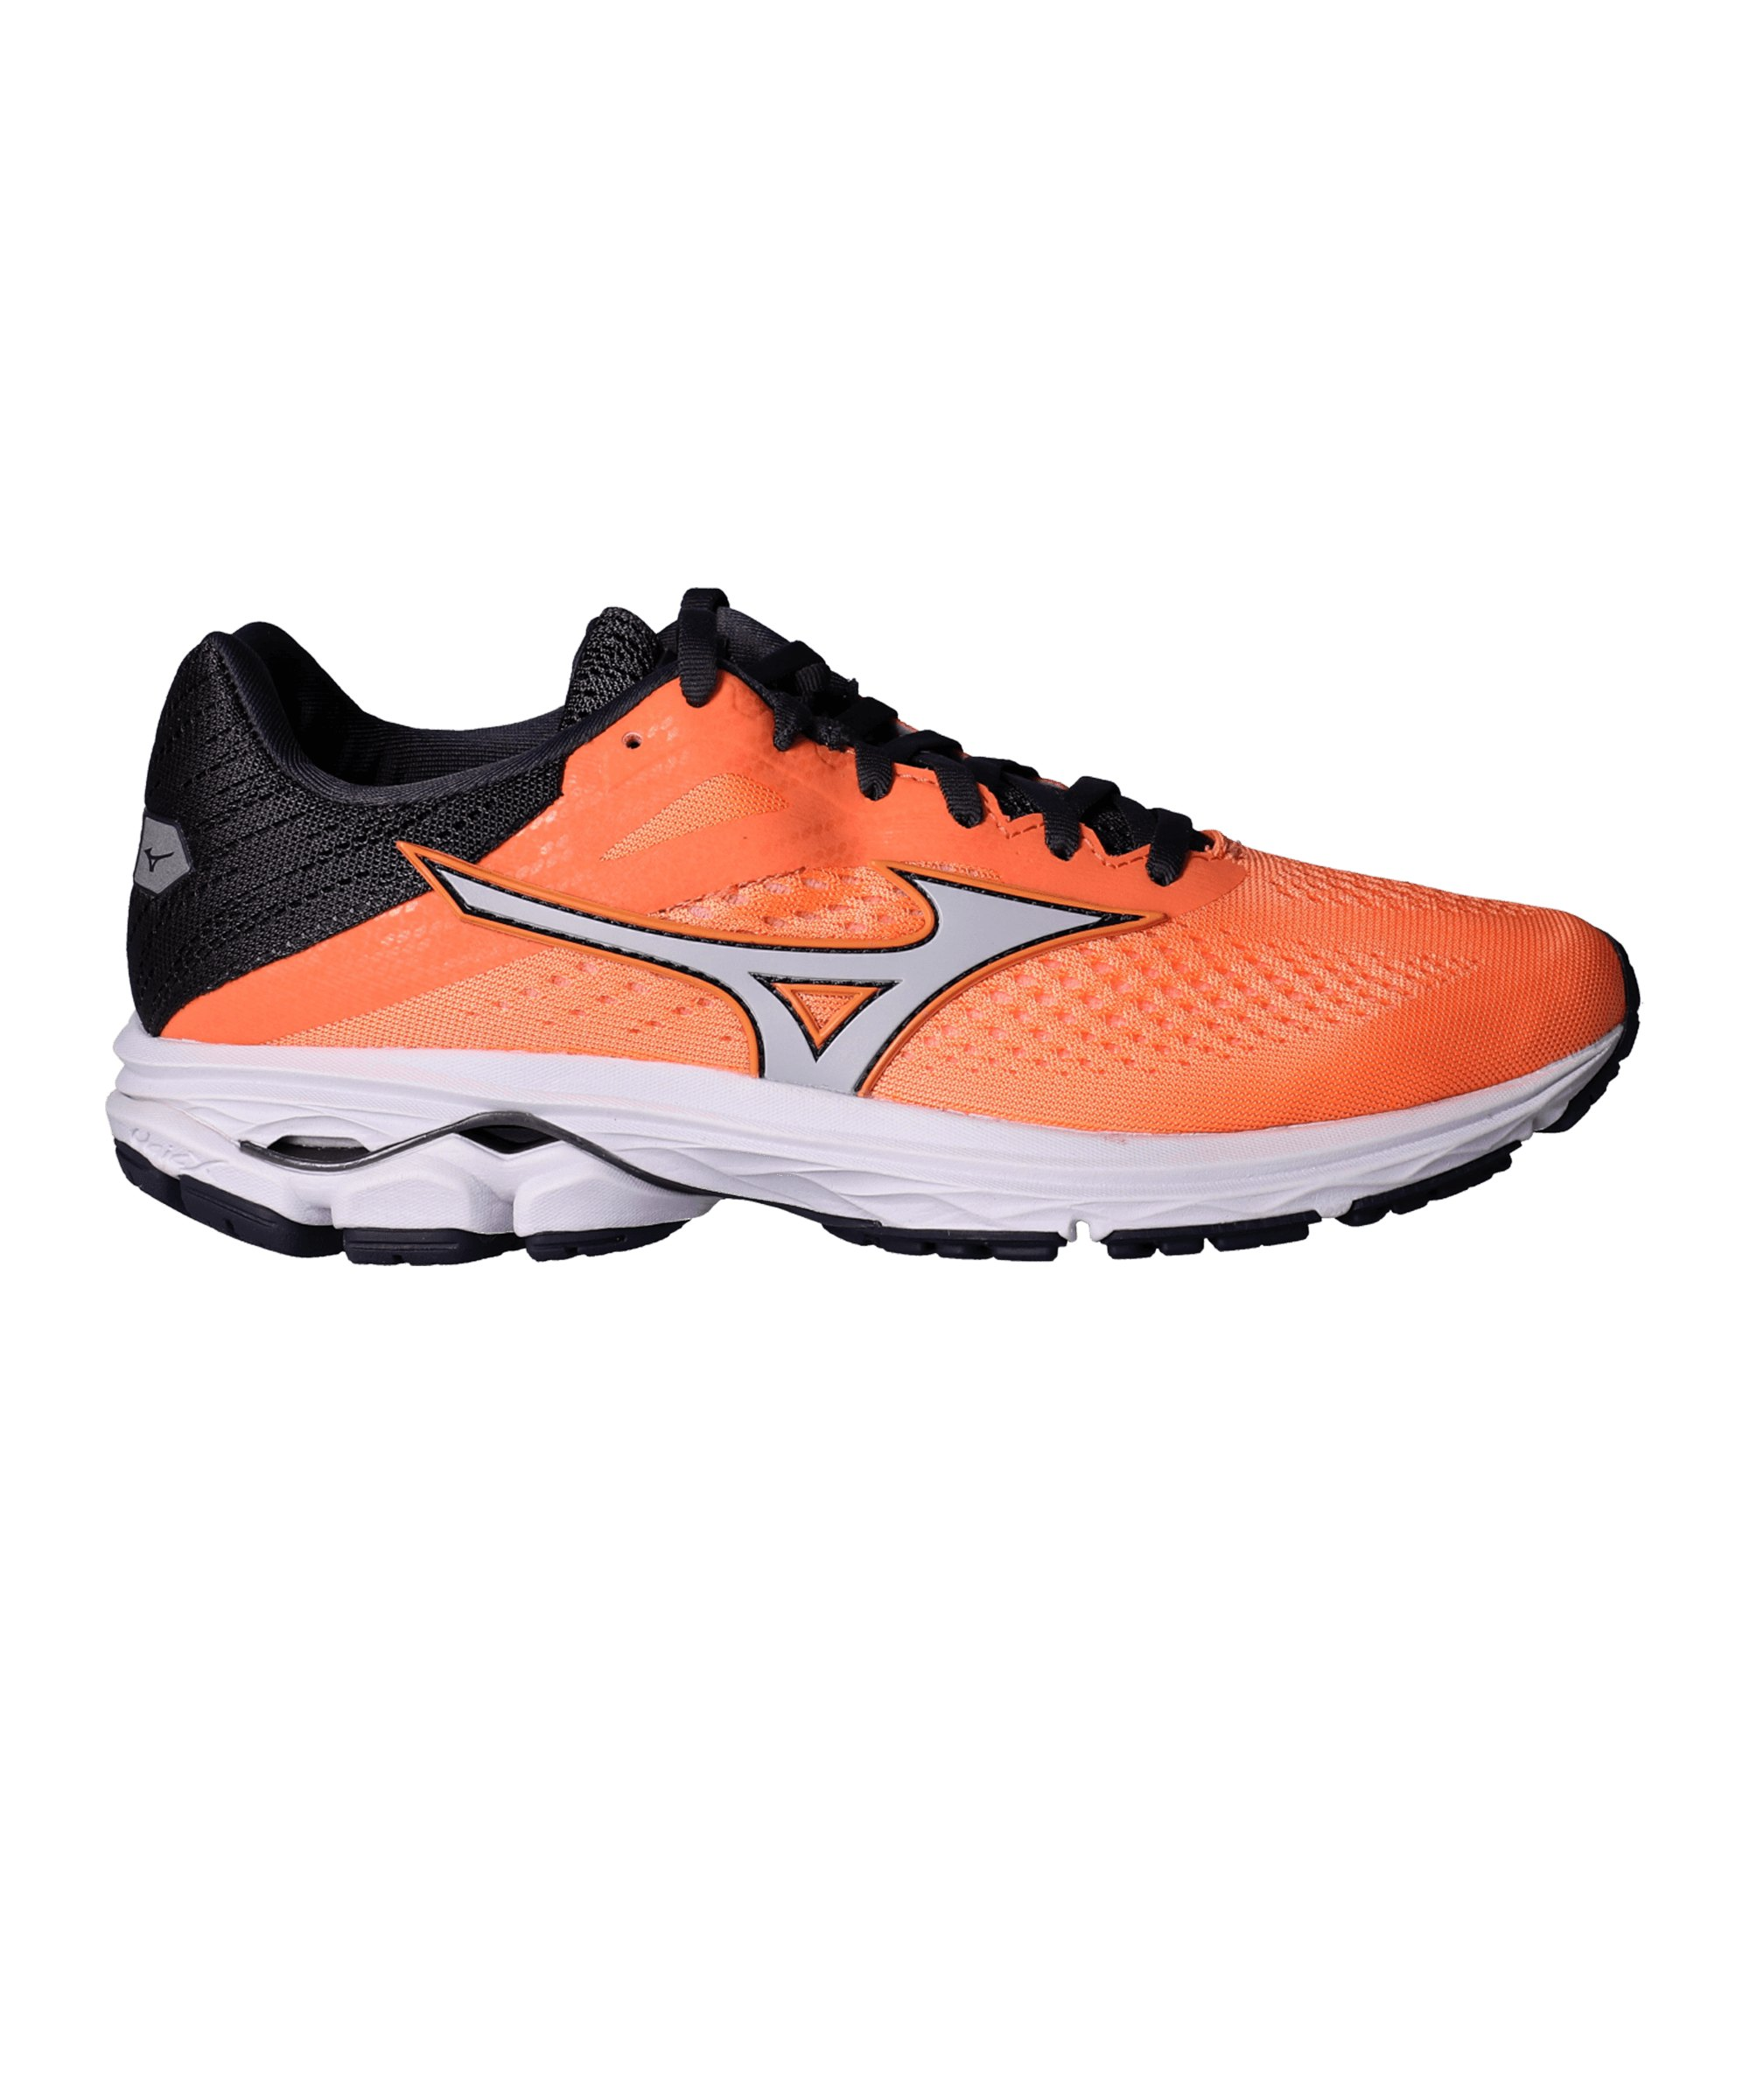 Mizuno Wave Rider 23 Running Damen Orange - orange